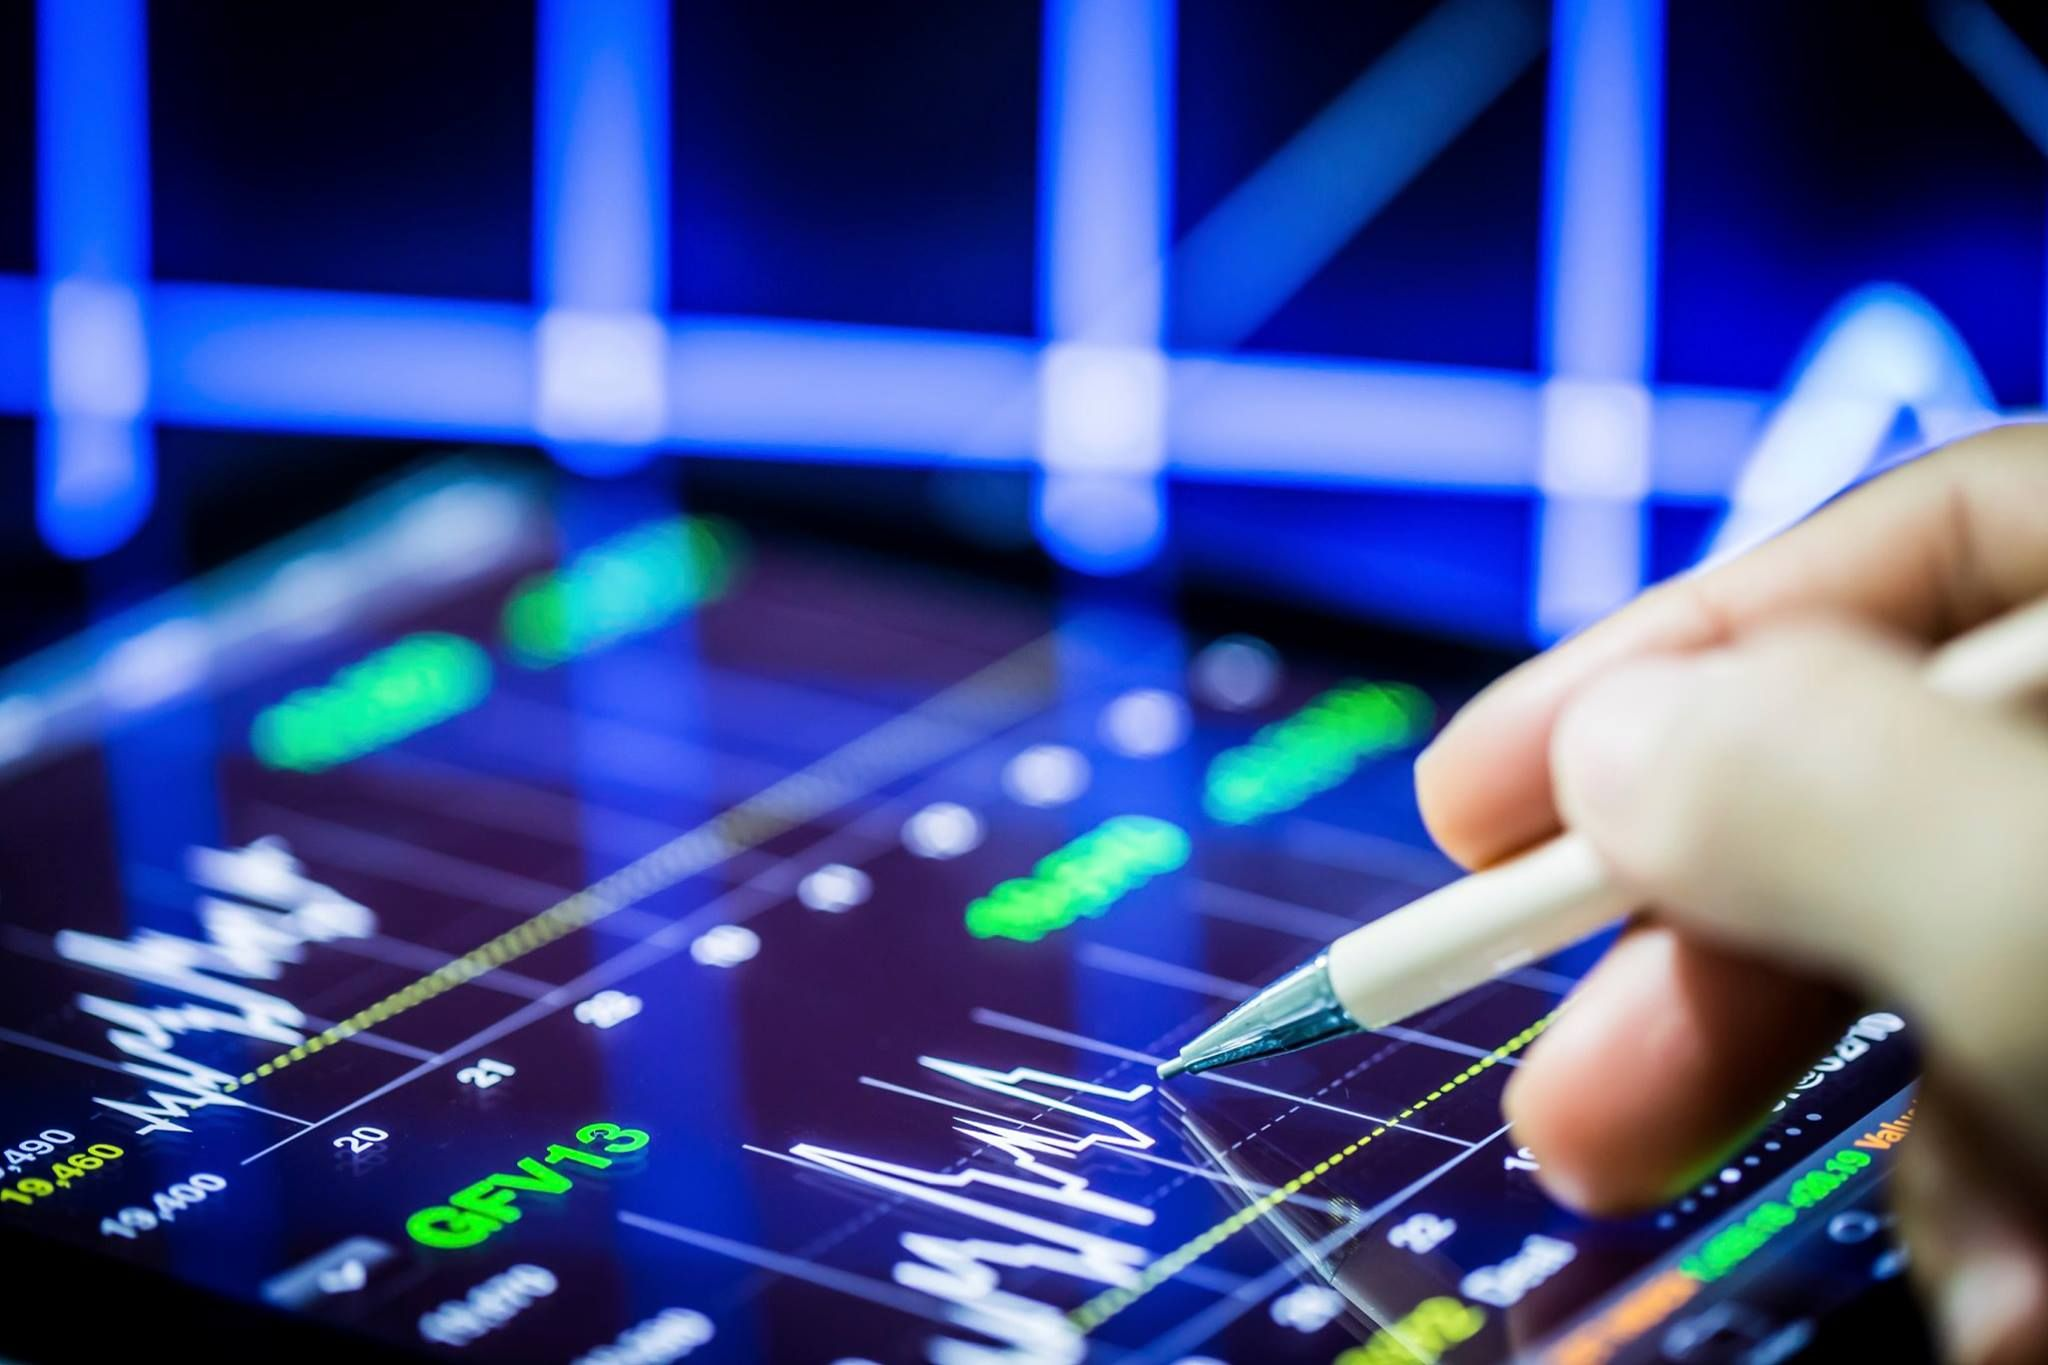 Claimsexpert option trading stock market intraday trading